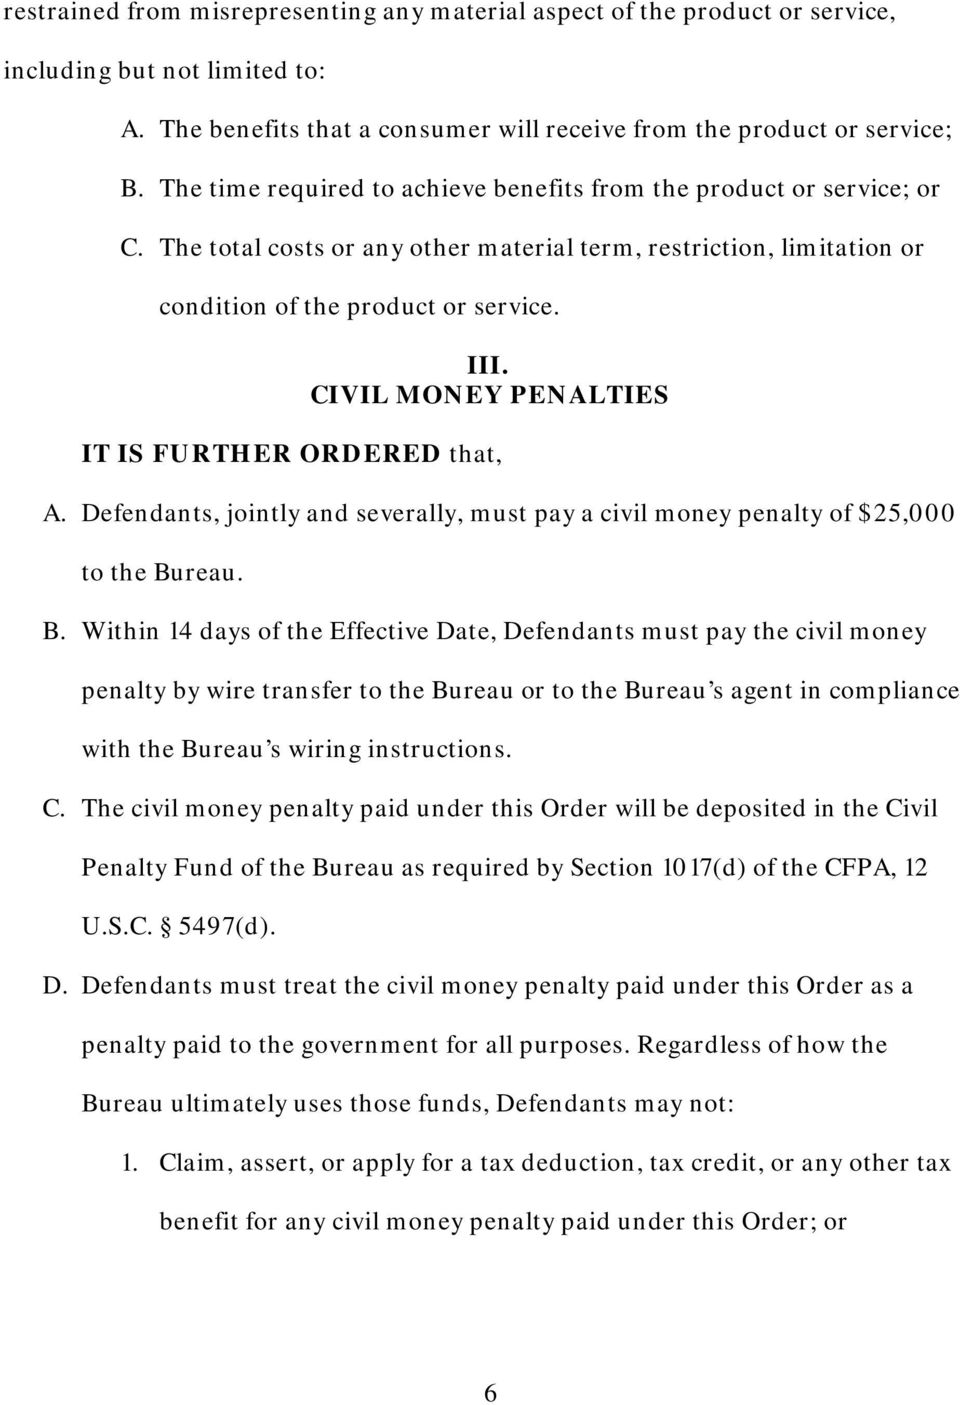 CIVIL MONEY PENALTIES IT IS FURTHER ORDERED that, A. Defendants, jointly and severally, must pay a civil money penalty of $25,000 to the Bu